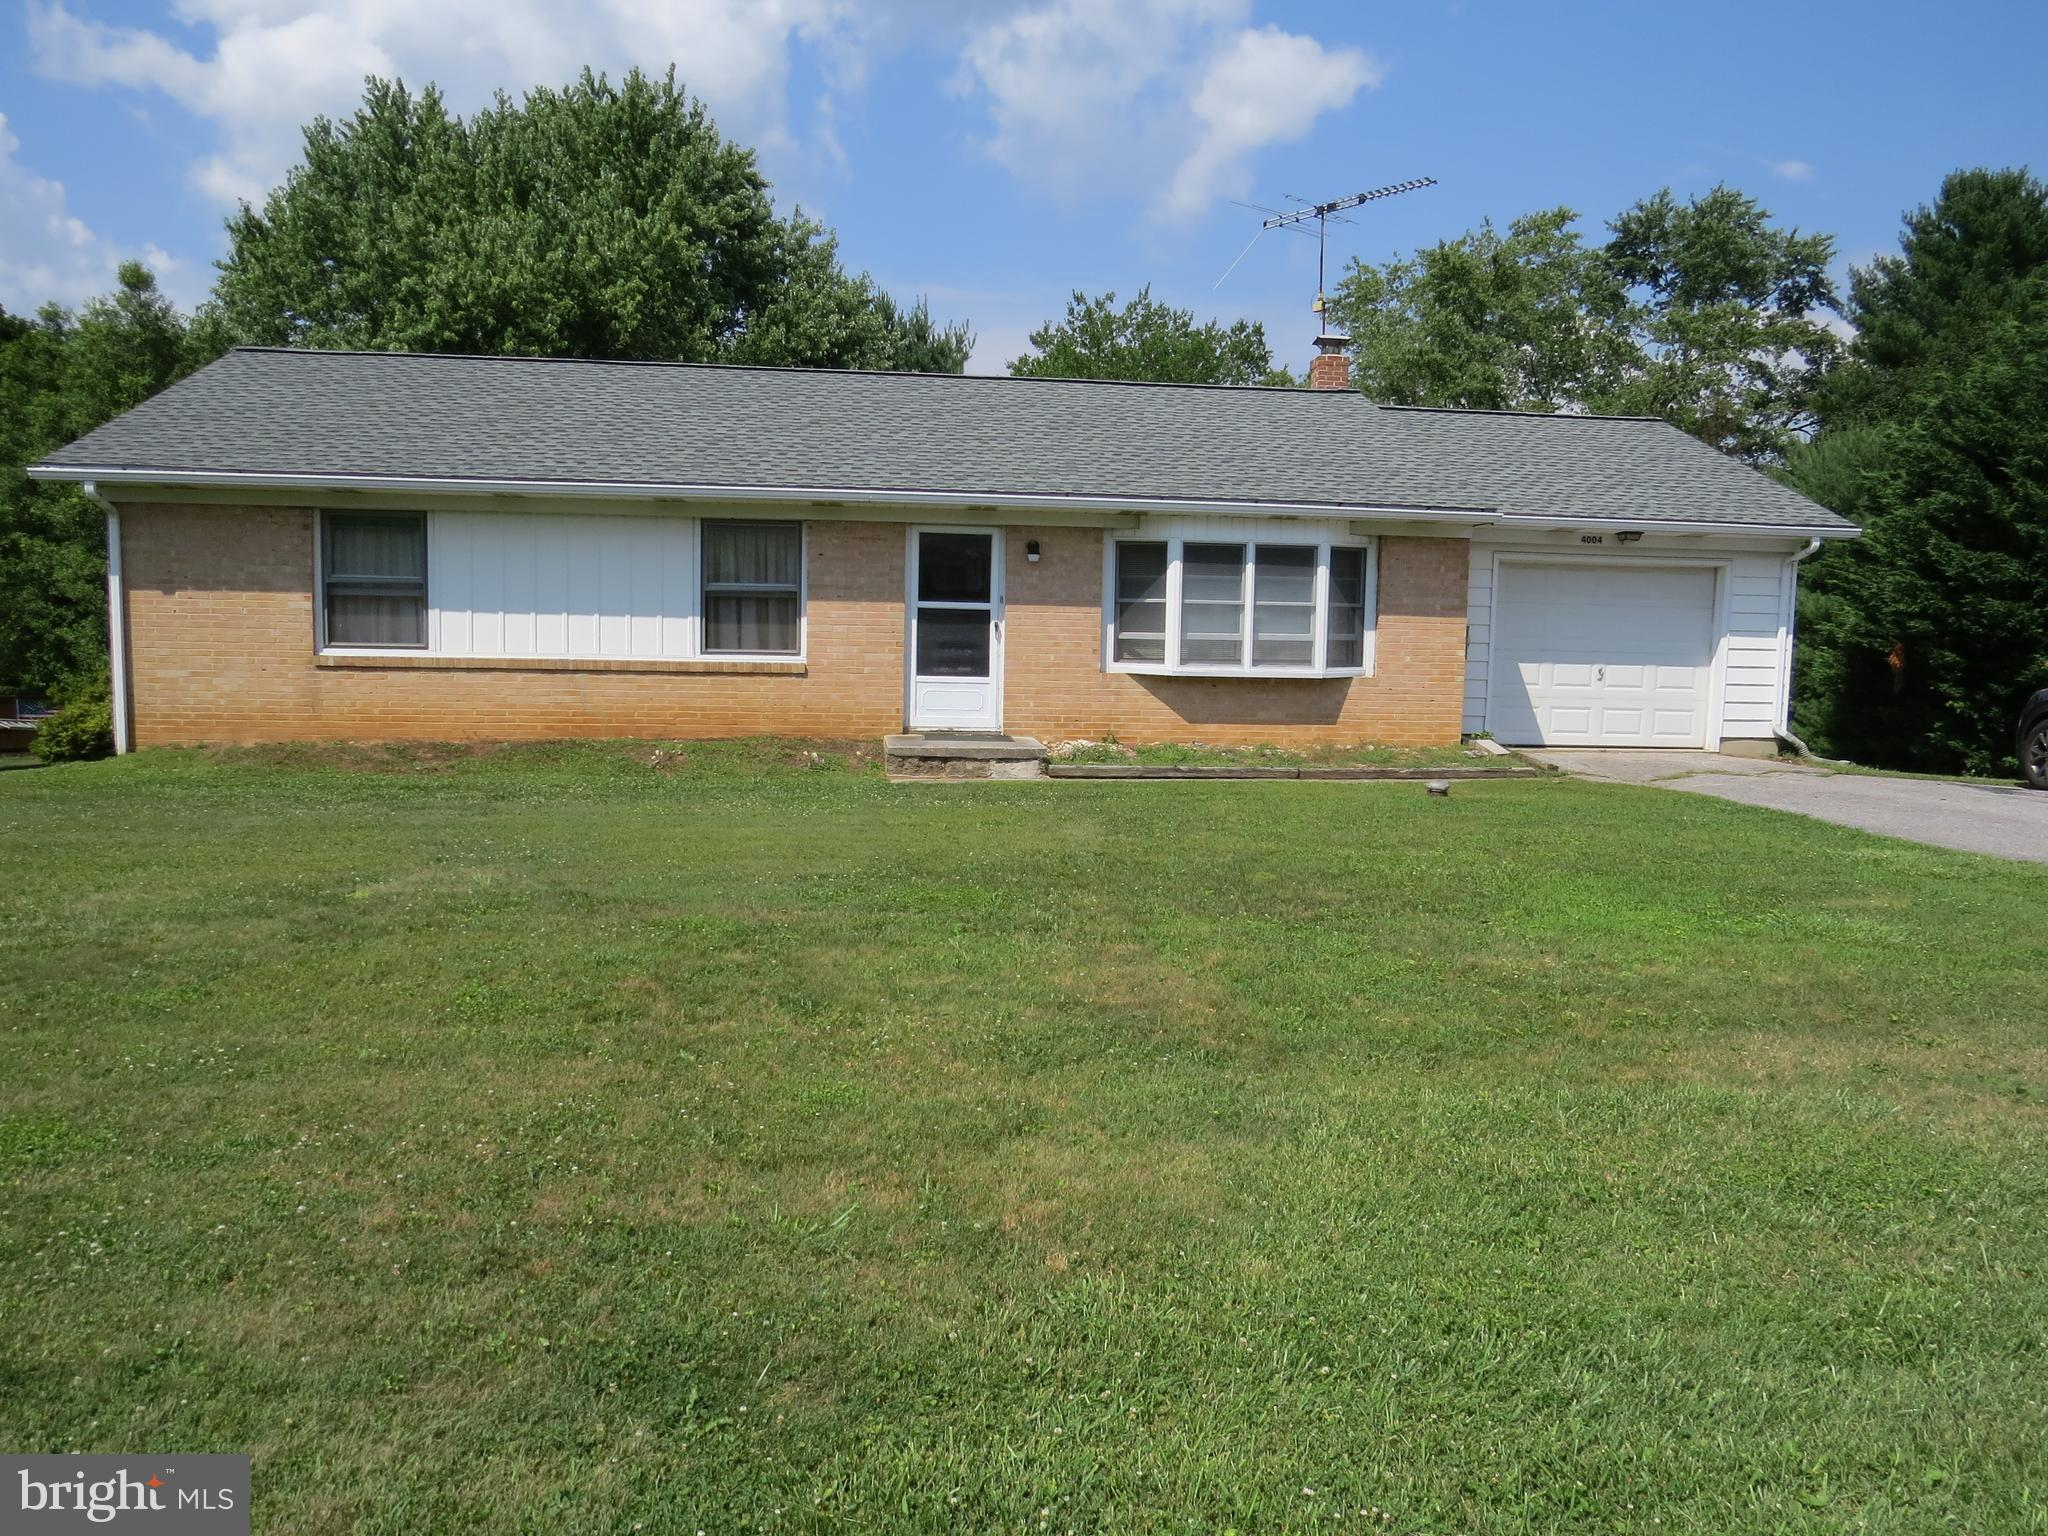 Here is the classic ranch style home you've been waiting for within a Court location.  3 Bedrooms, 1